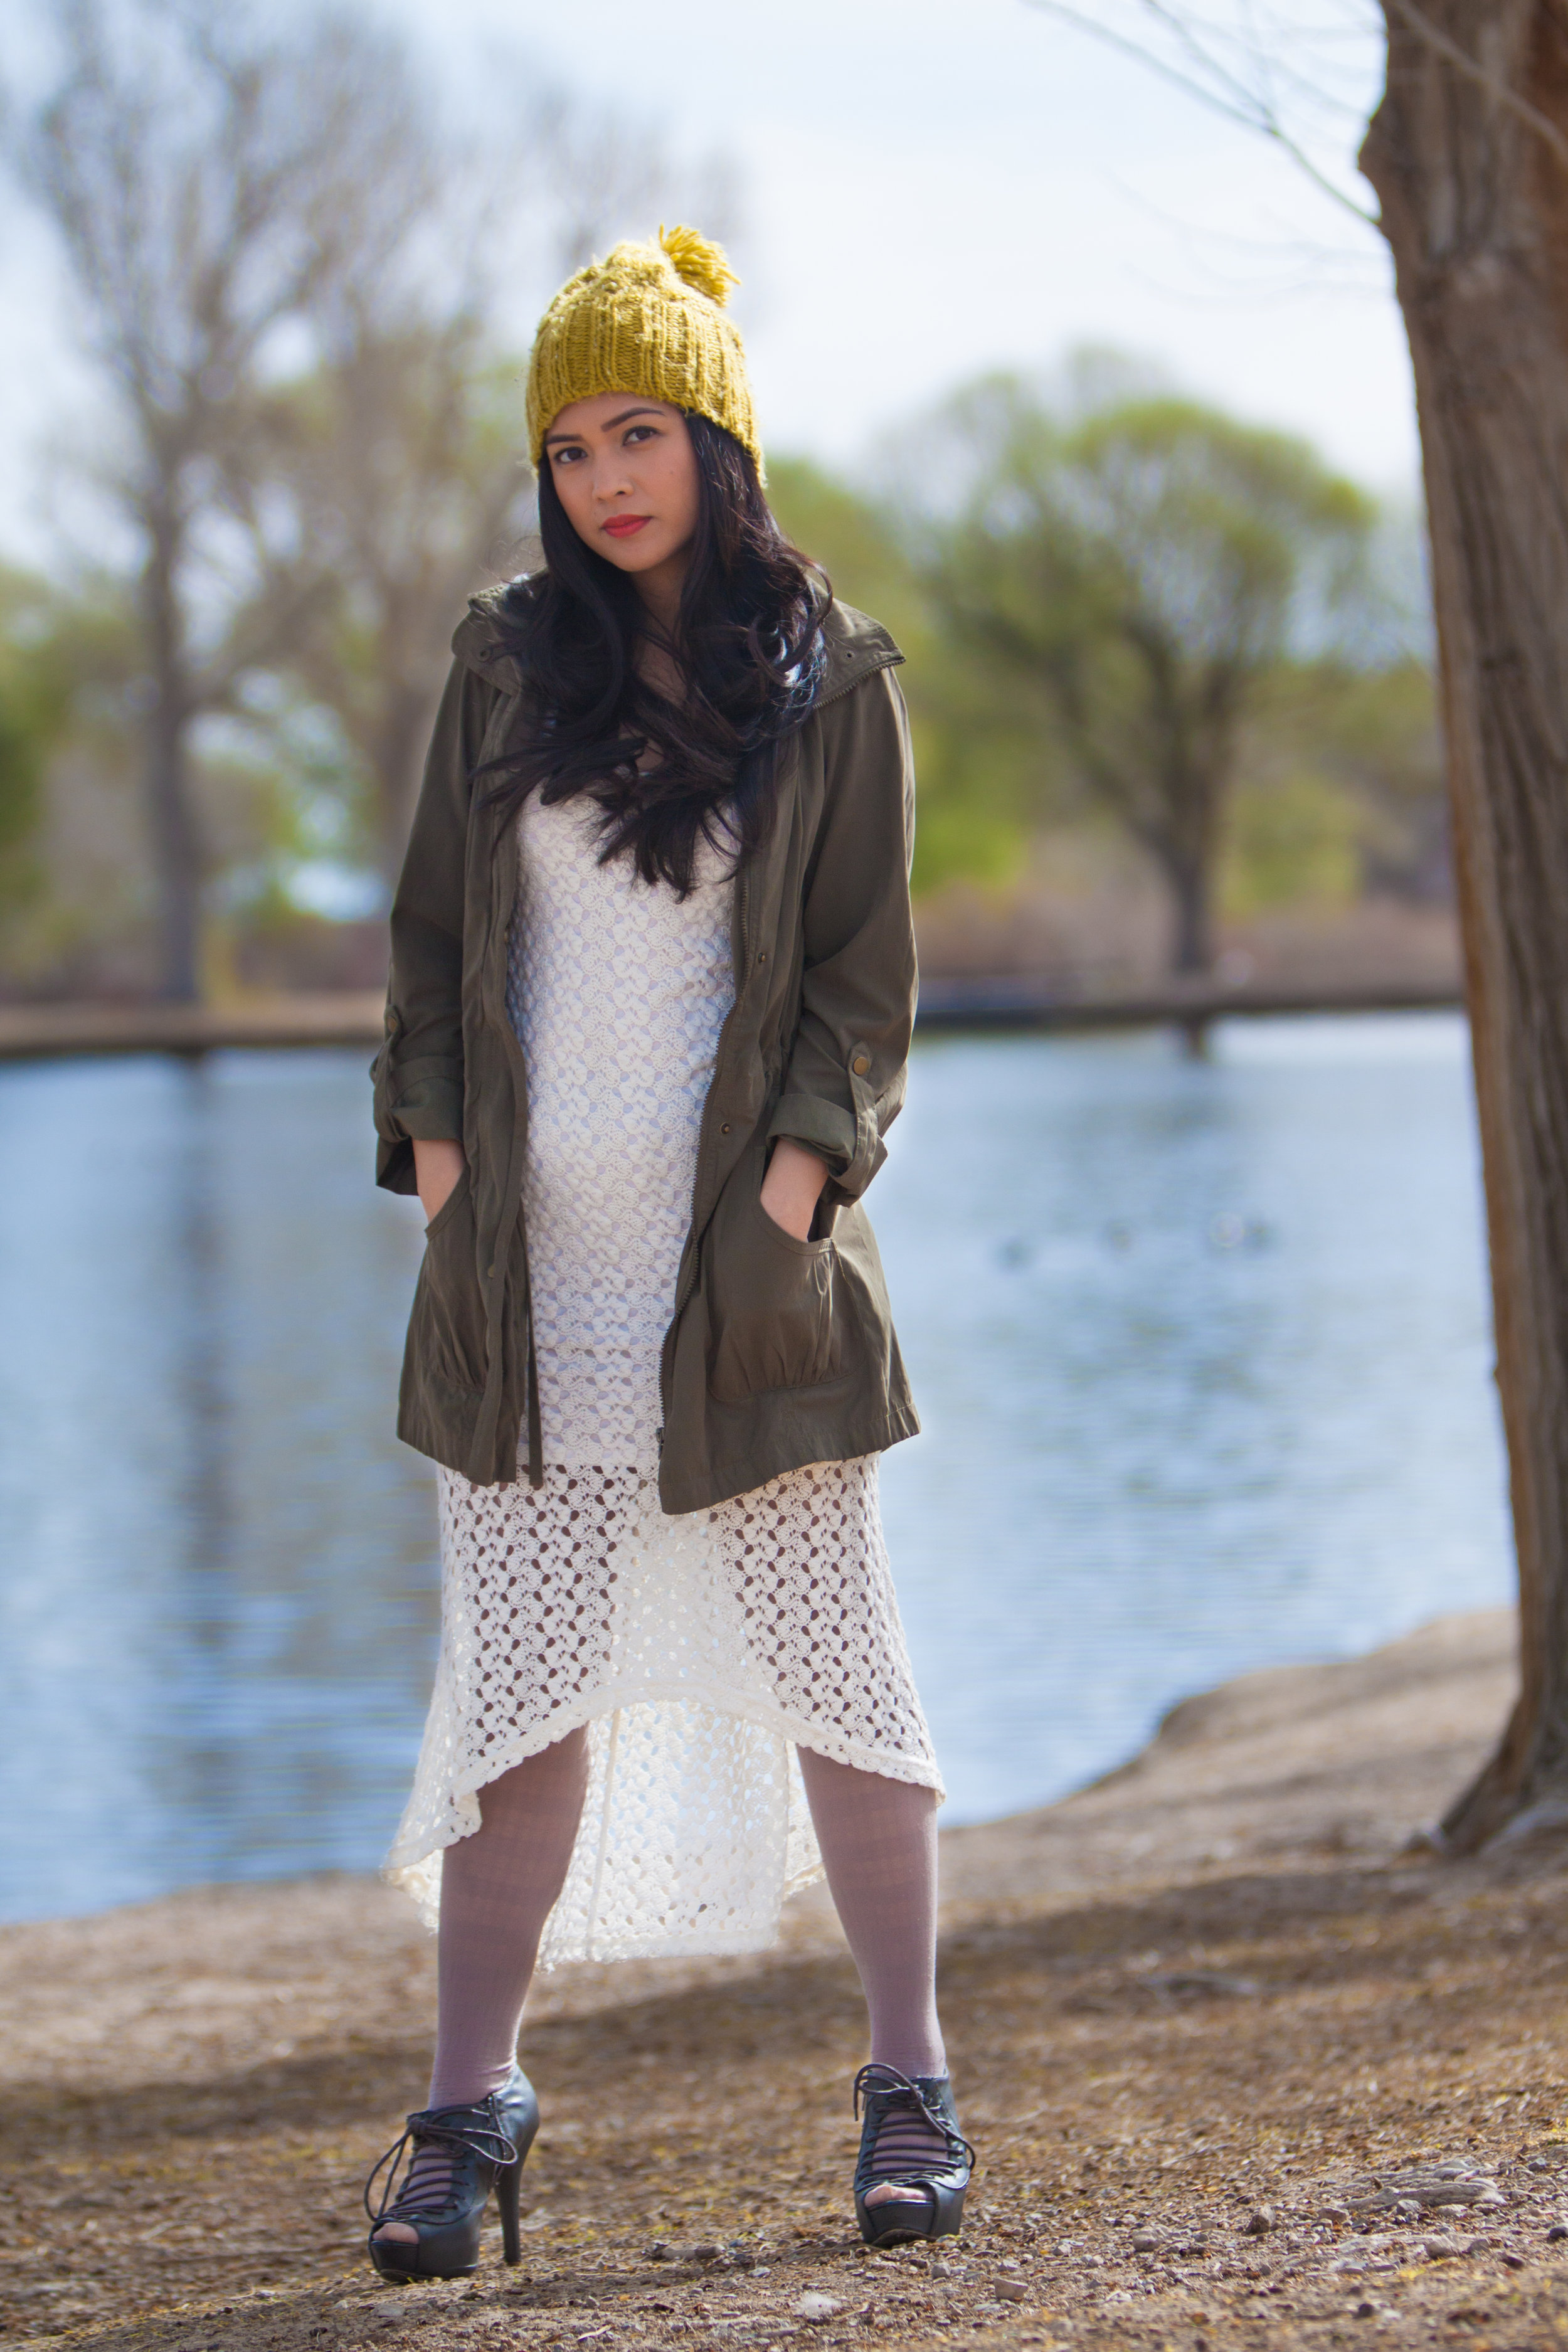 Army Jacket and Dress // T arget